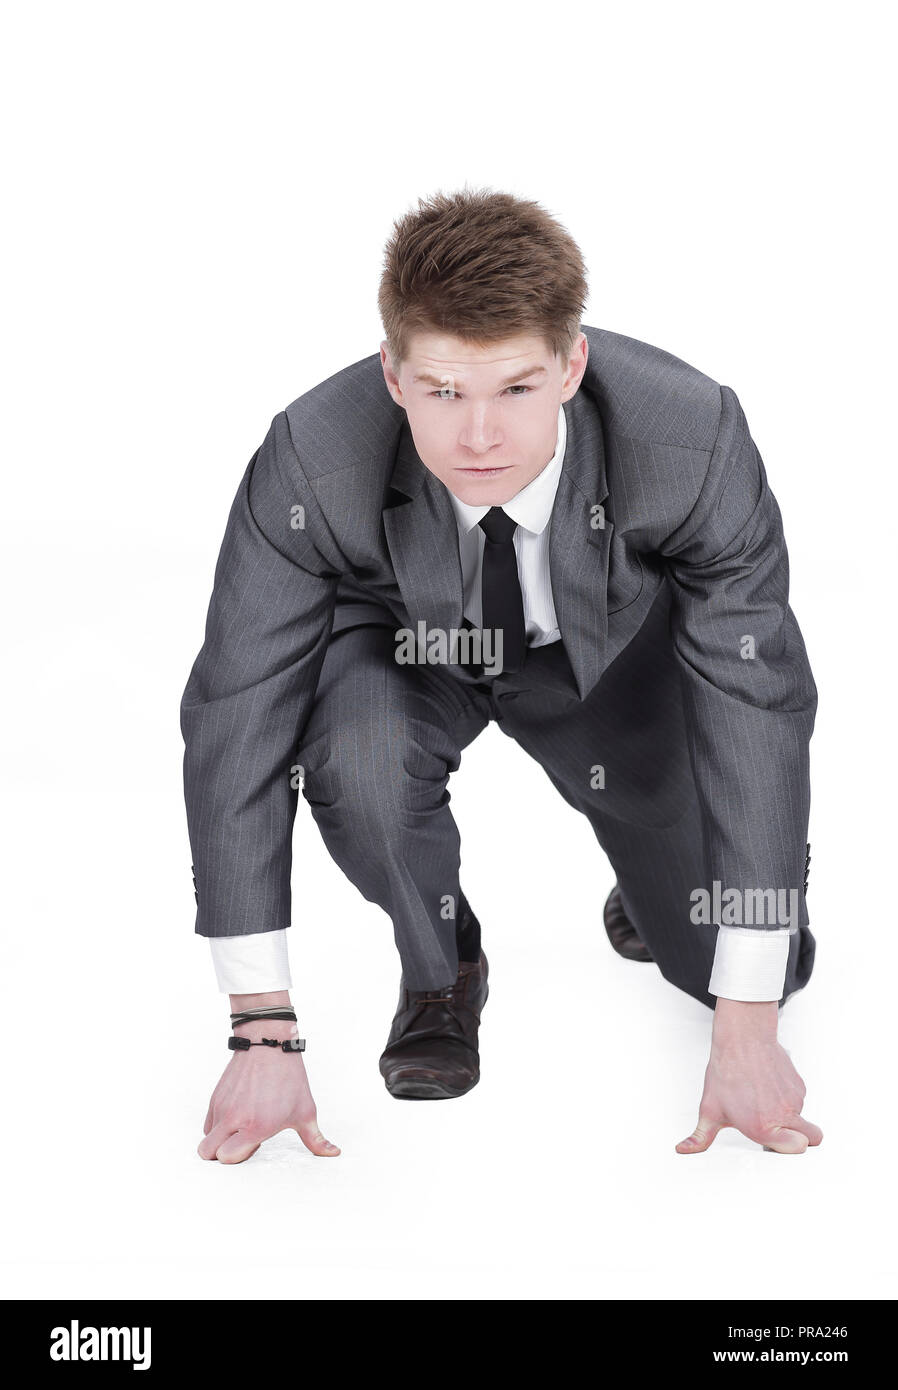 Businessman taking low start to running. On white background. - Stock Image